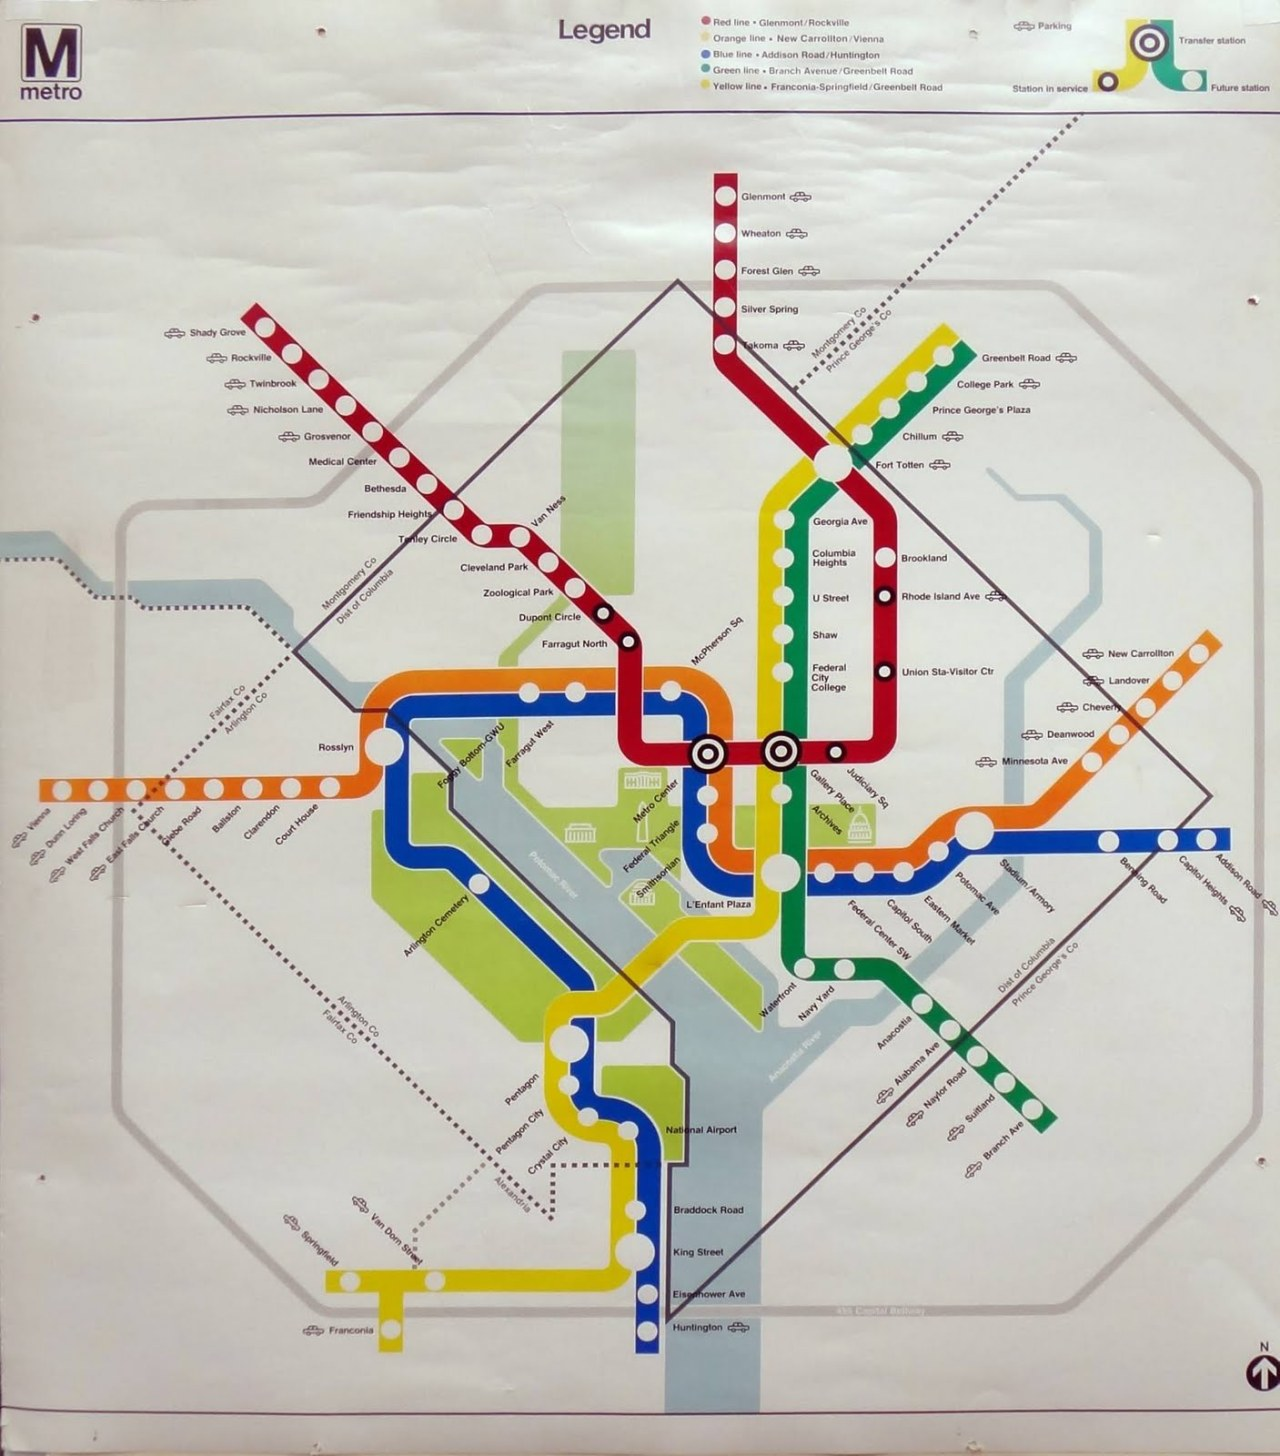 "Historical Map: Washington, DC Metro Map, 1977 As you know, I've had a lot to say about recent iterations of the Washington, DC Metro Map (Rush+ map review, draft Silver Line map review), but how about a look at where it all began? This is a Metro map from March, 1977 — about a year after the system first started carrying passengers. At first glance, it looks very similar to today's modern map… but then you realise that the only section that's actually in service is the Red Line between Dupont Circle and Rhode Island Avenue, denoted by black outlines around the station circles, rather than the plain white circles used for future stations. The uncanny resemblance to today's map comes about because the whole system shown here — up to and including the opening of the Green Line segment to Branch Avenue in 2001 — was planned for right from the start of the project. If you look closely, there are actually quite a few differences: the Blue and Yellow Lines south of Pentagon are reversed from today's configuration, and a number of station names have changed from these initial plans. Bigger visual differences include the lack of the kink in the Yellow/Green line around Columbia Heights and a much greater sense of visual clarity: short station names (note that it's only ""U Street"" here!) and no secondary information like cross streets, hospitals or timetable/routing callout boxes give the map room to breathe. While not quite the mimimalist classic that Massimo Vignelli's New York Subway map is, this version of the map is definitely far more deserving of the ""iconic"" tag than its modern descendants. Our rating: An unadulterated look at the far superior original concept. Four stars.  (Source: Subchat.com thread about the map: the thread originally dates the map to March 27, 1976, but later revises it to March 17, 1977 because of the stations that are shown as being open — Dupont Circle and Gallery Place stations opened after the rest of the Phase I Red Line stations)"